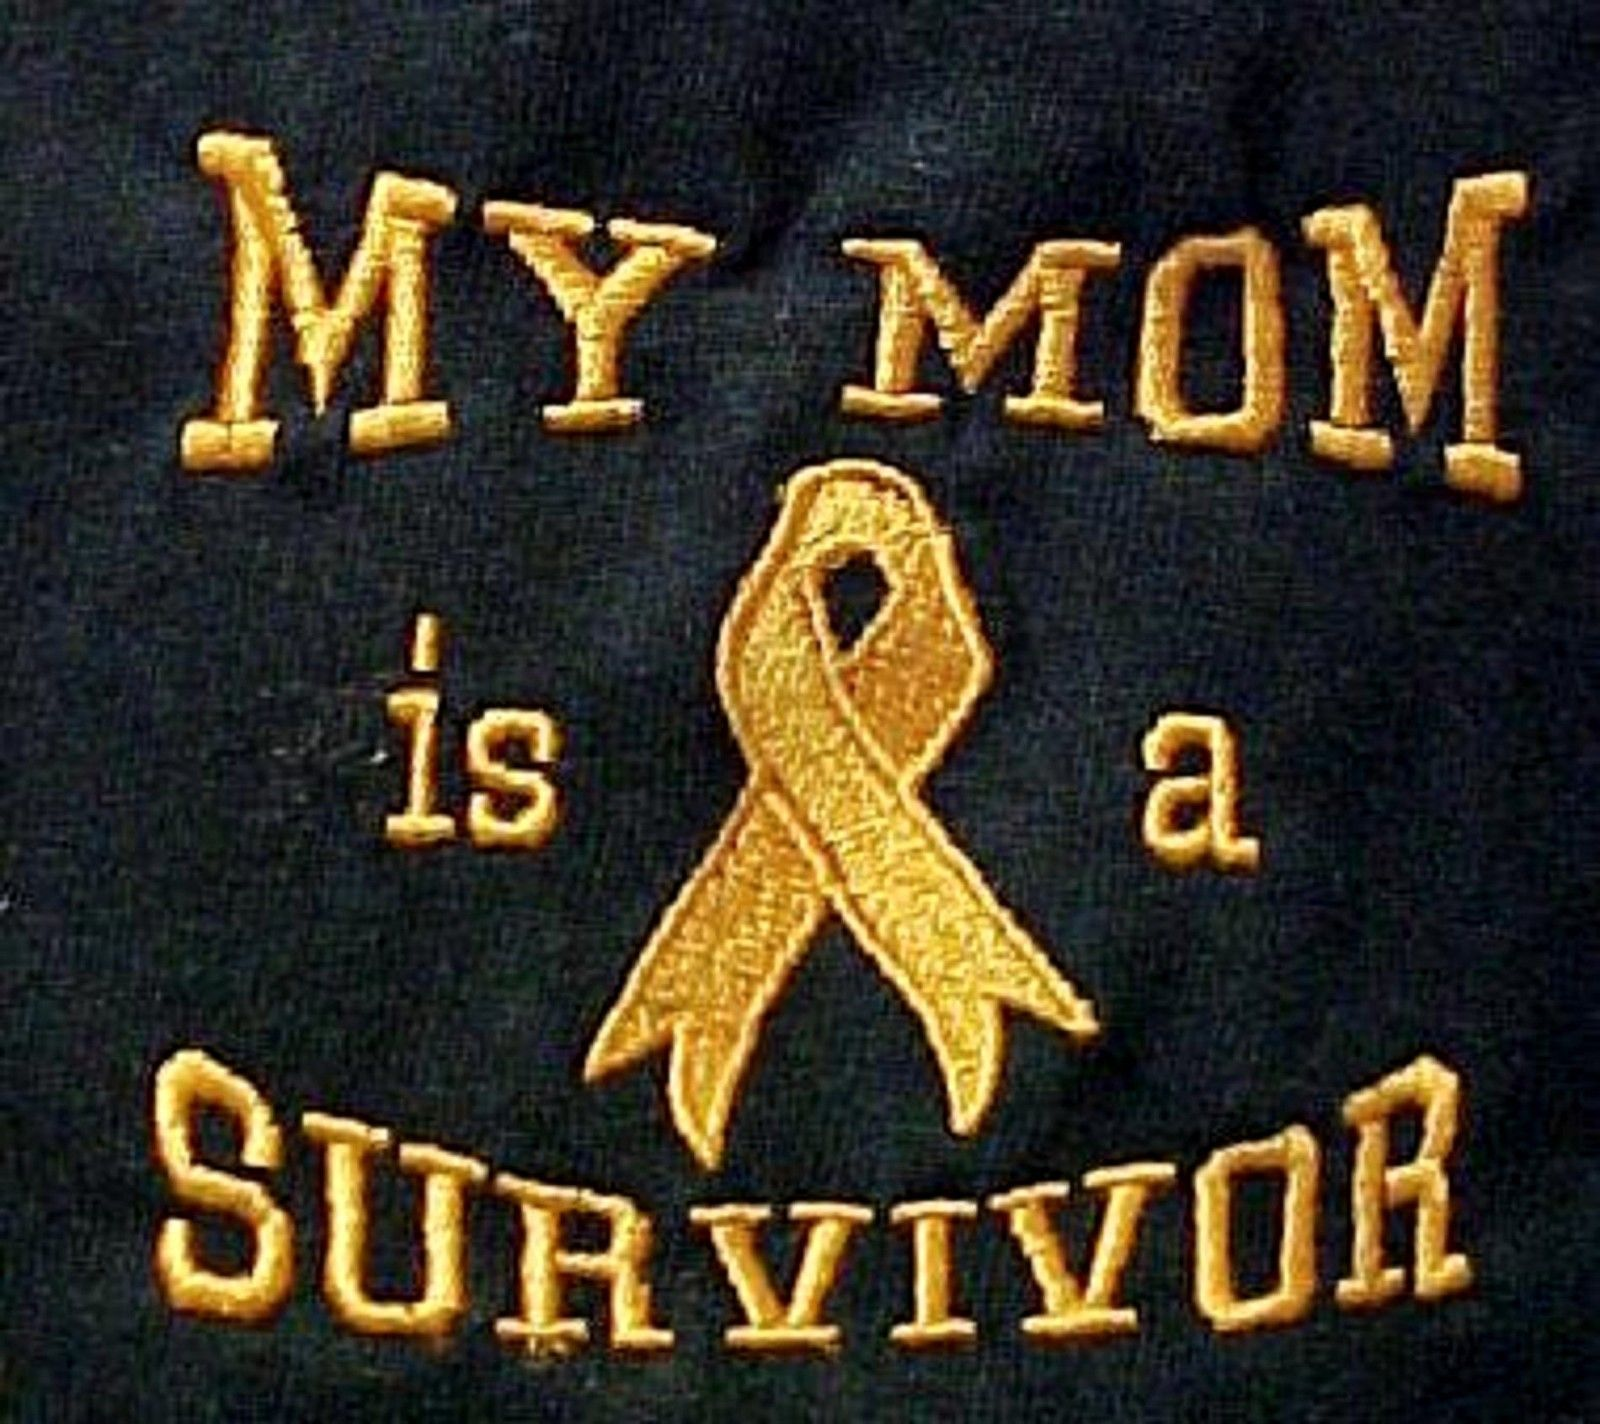 Primary image for Orange Ribbon Sweatshirt 3XL Awareness My Mom is a Survivor Black Crew Neck New